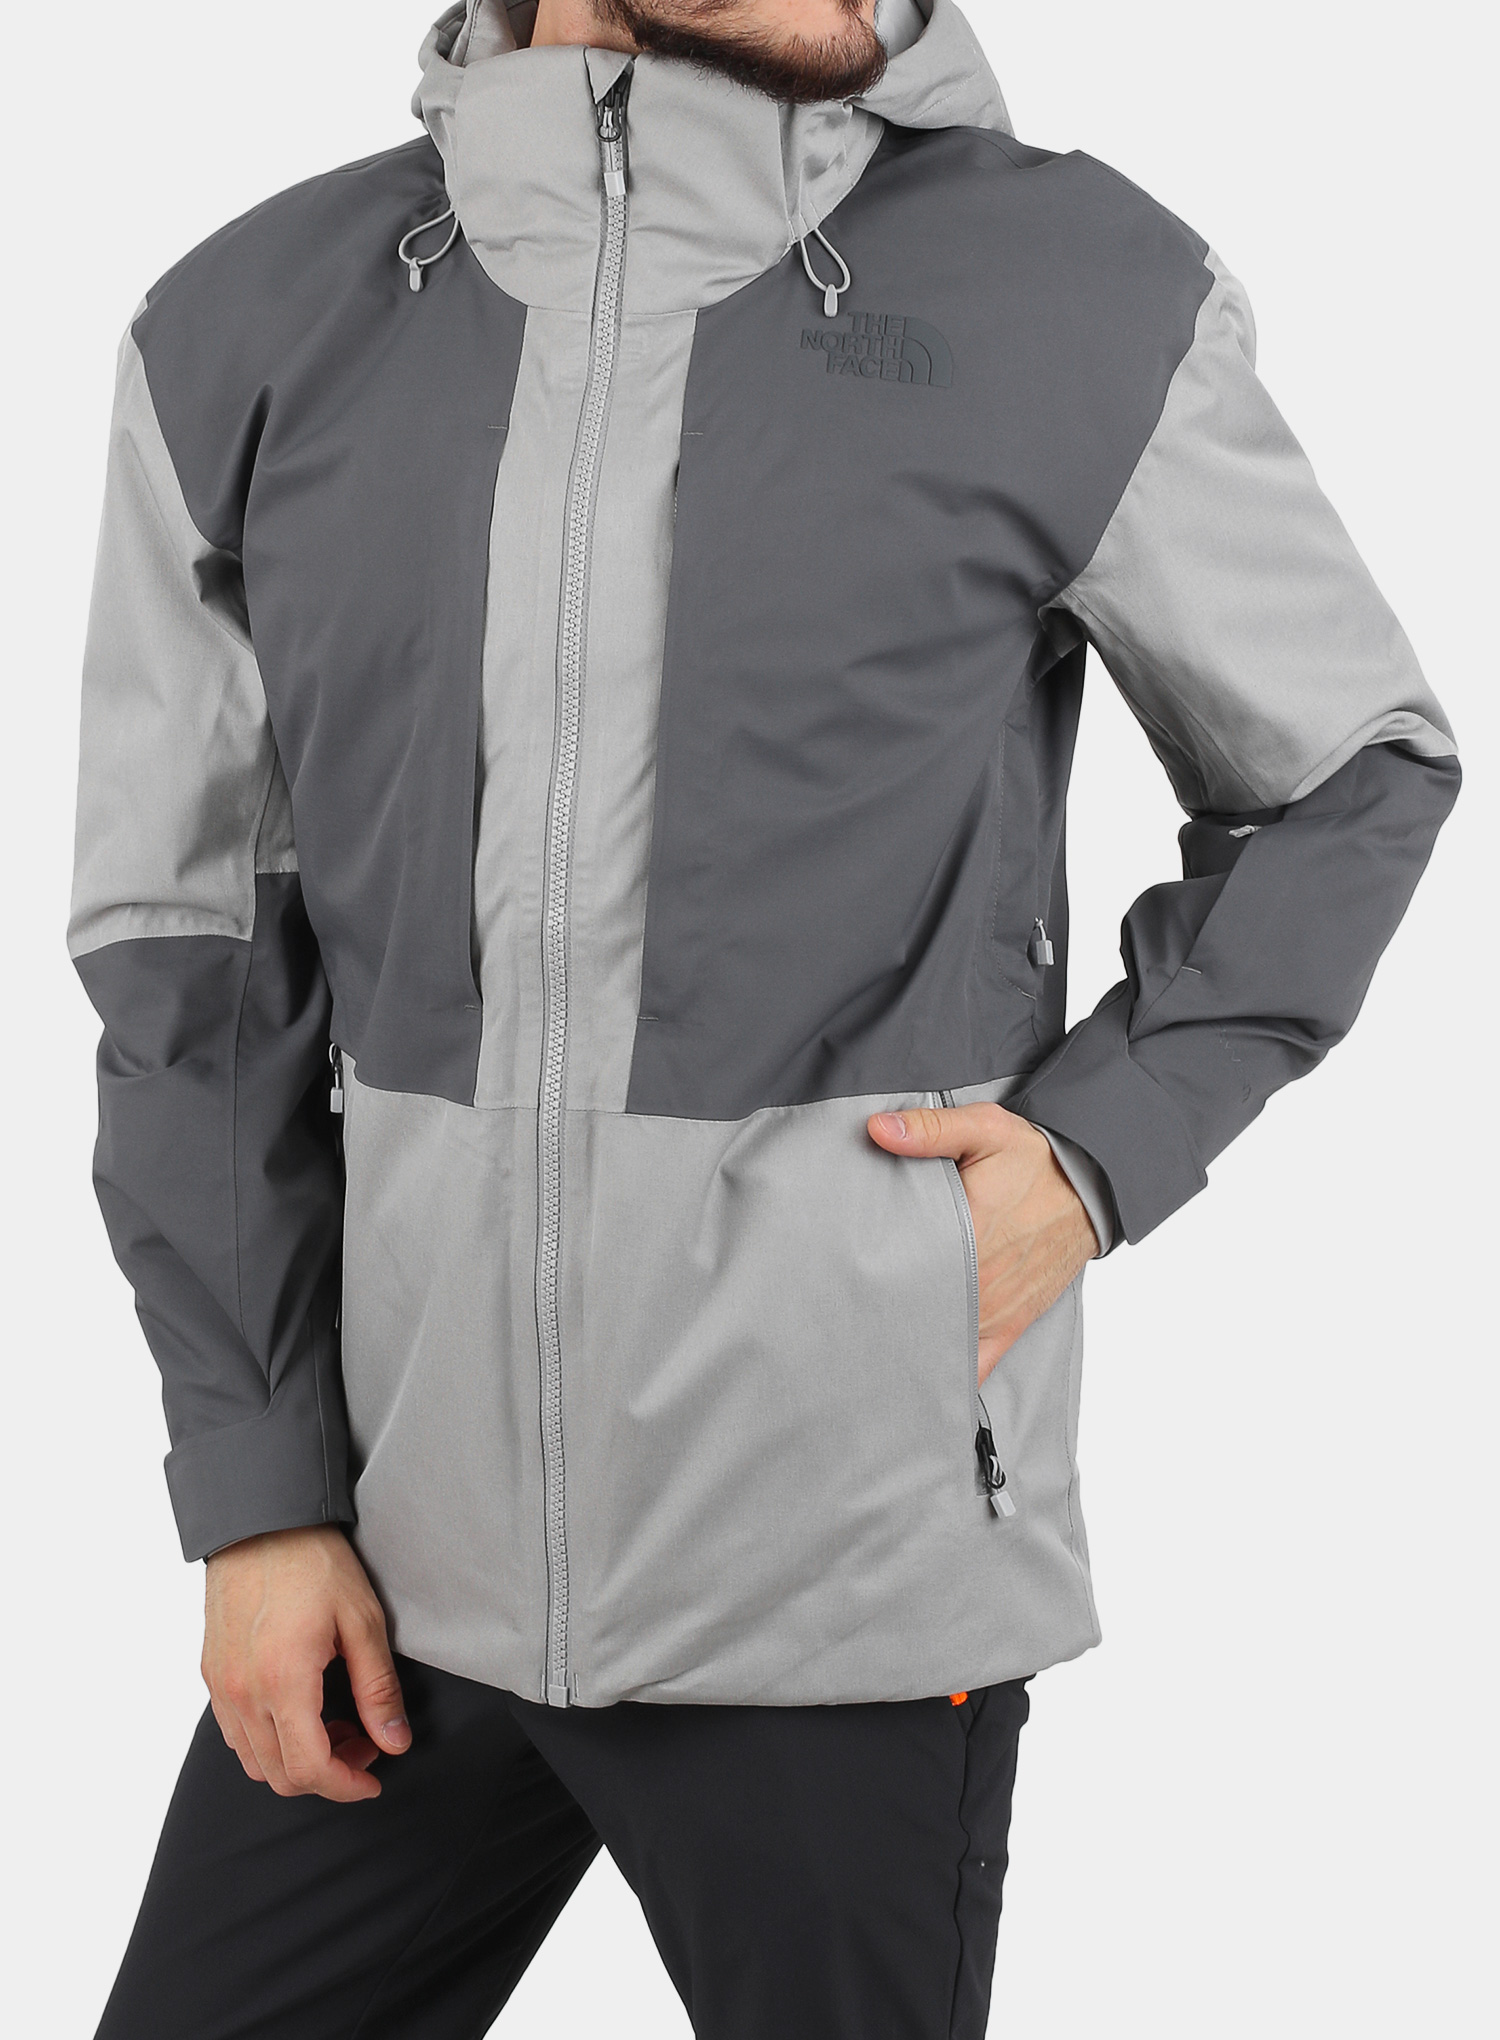 Kurtka The North Face Chakal Jacket - meld grey/vanadis grey - zdjęcie nr. 1